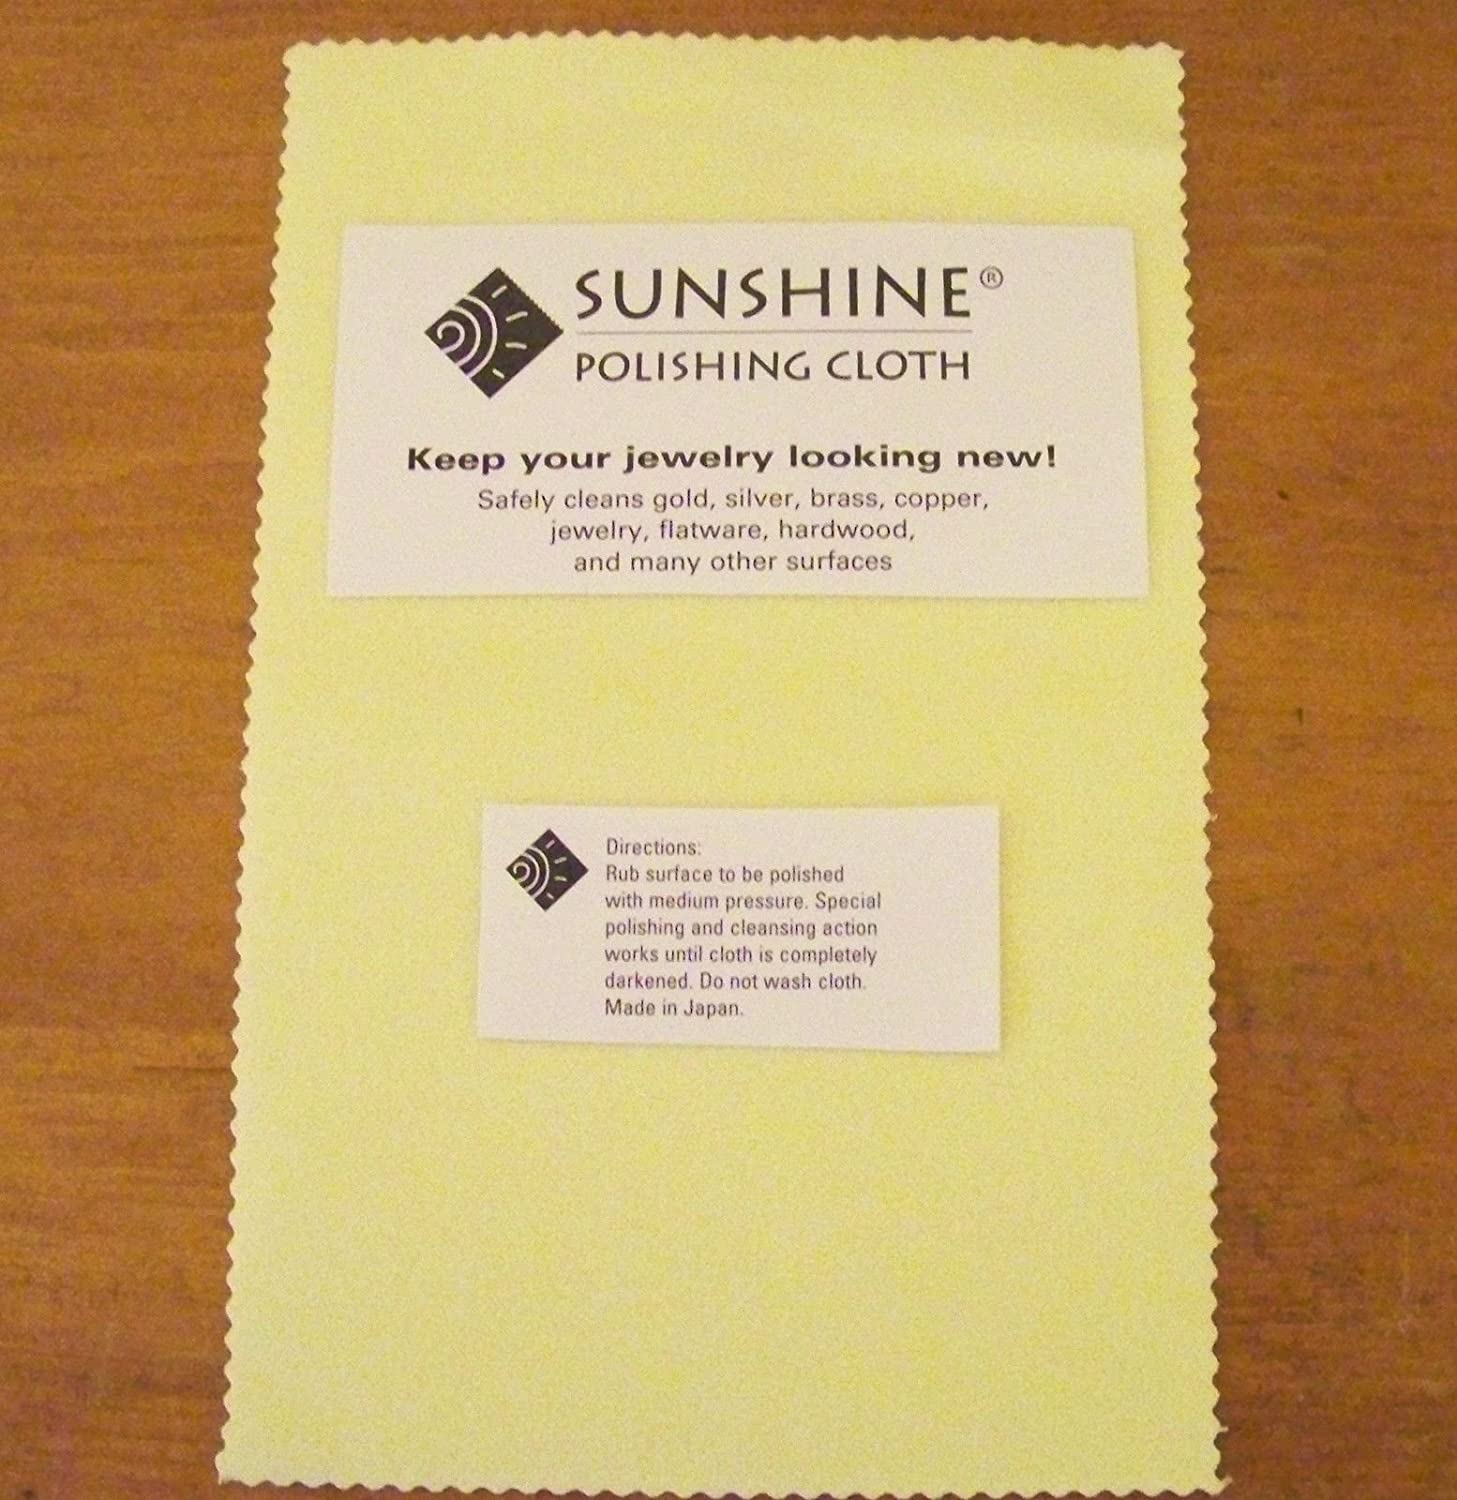 20 Sunshine Polishing Cloth for Sterling Silver, Gold, Brass and Copper Jewelry Polishing Cloth